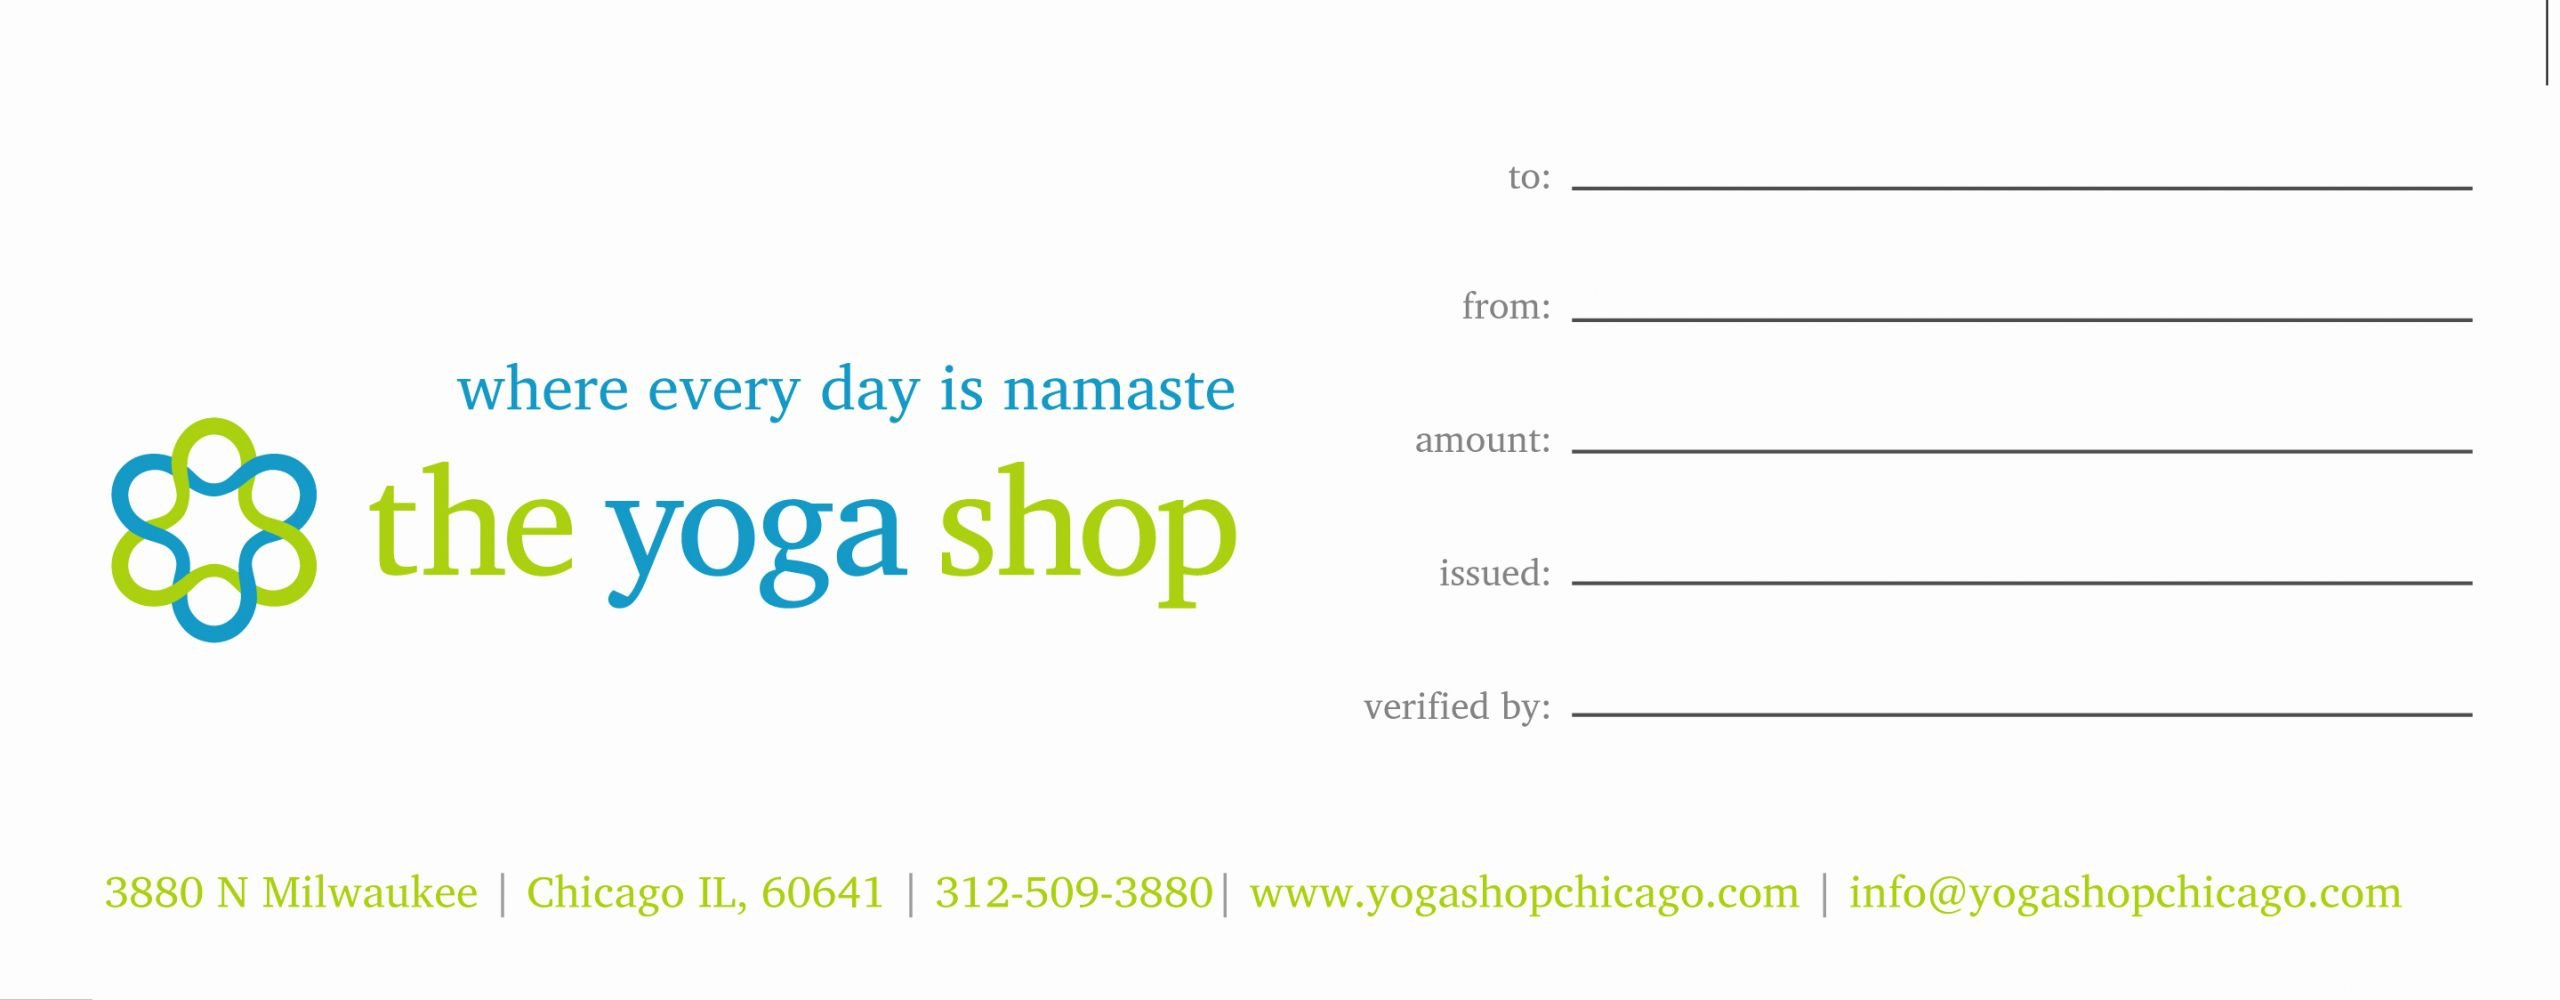 Yoga Gift Certificate Template Free Lovely Gift Certificates the Yoga Shop Chicago